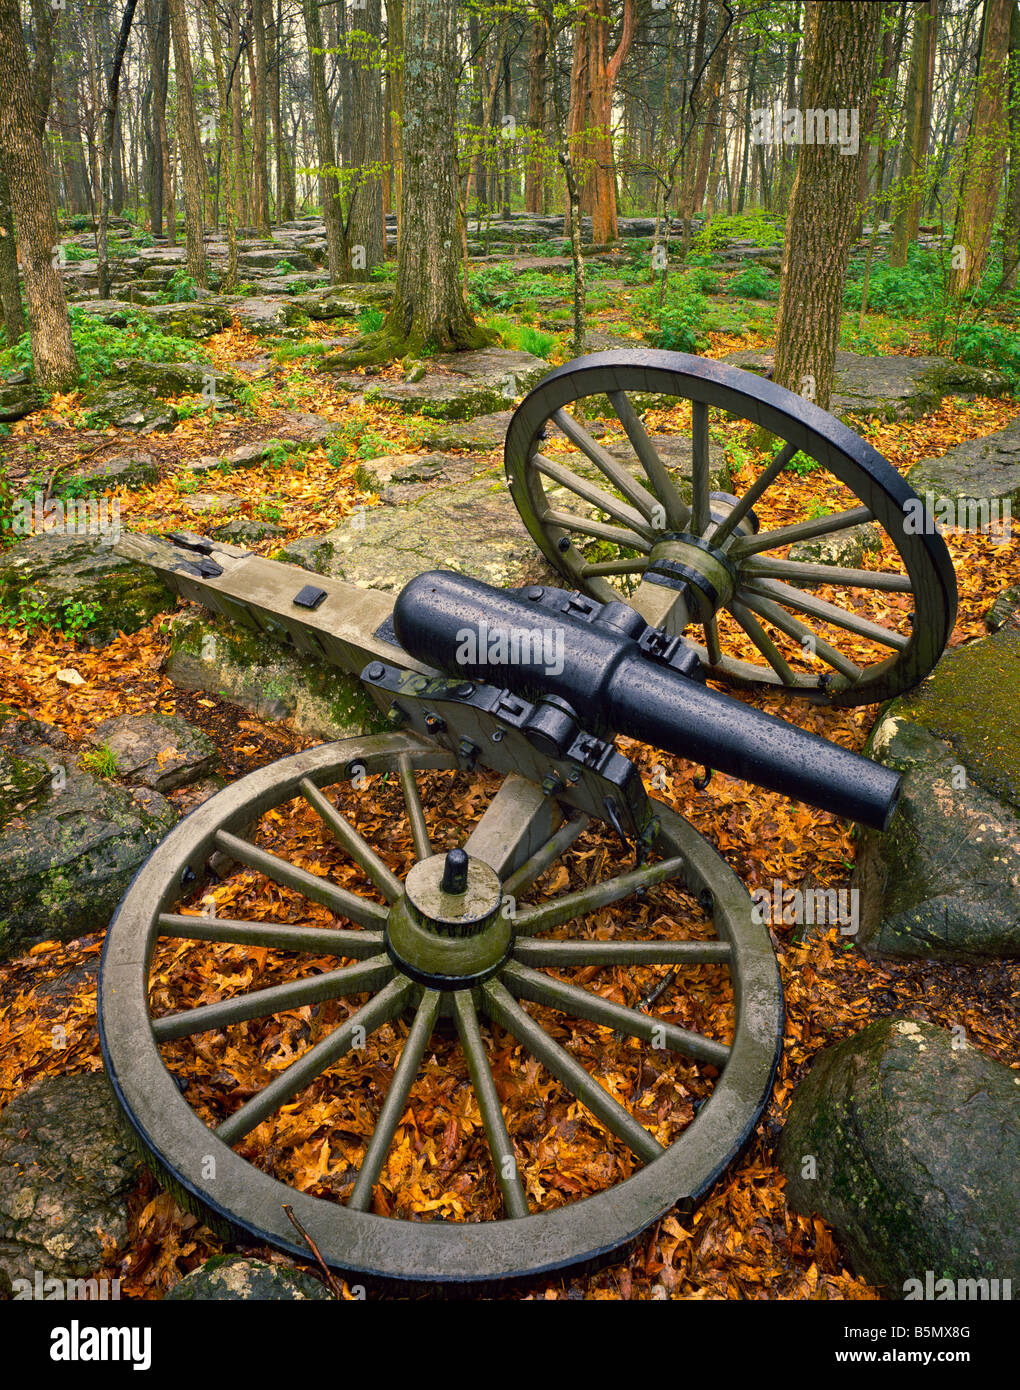 Broken artillery in forest Stones River National Battlefield Tennessee - Stock Image